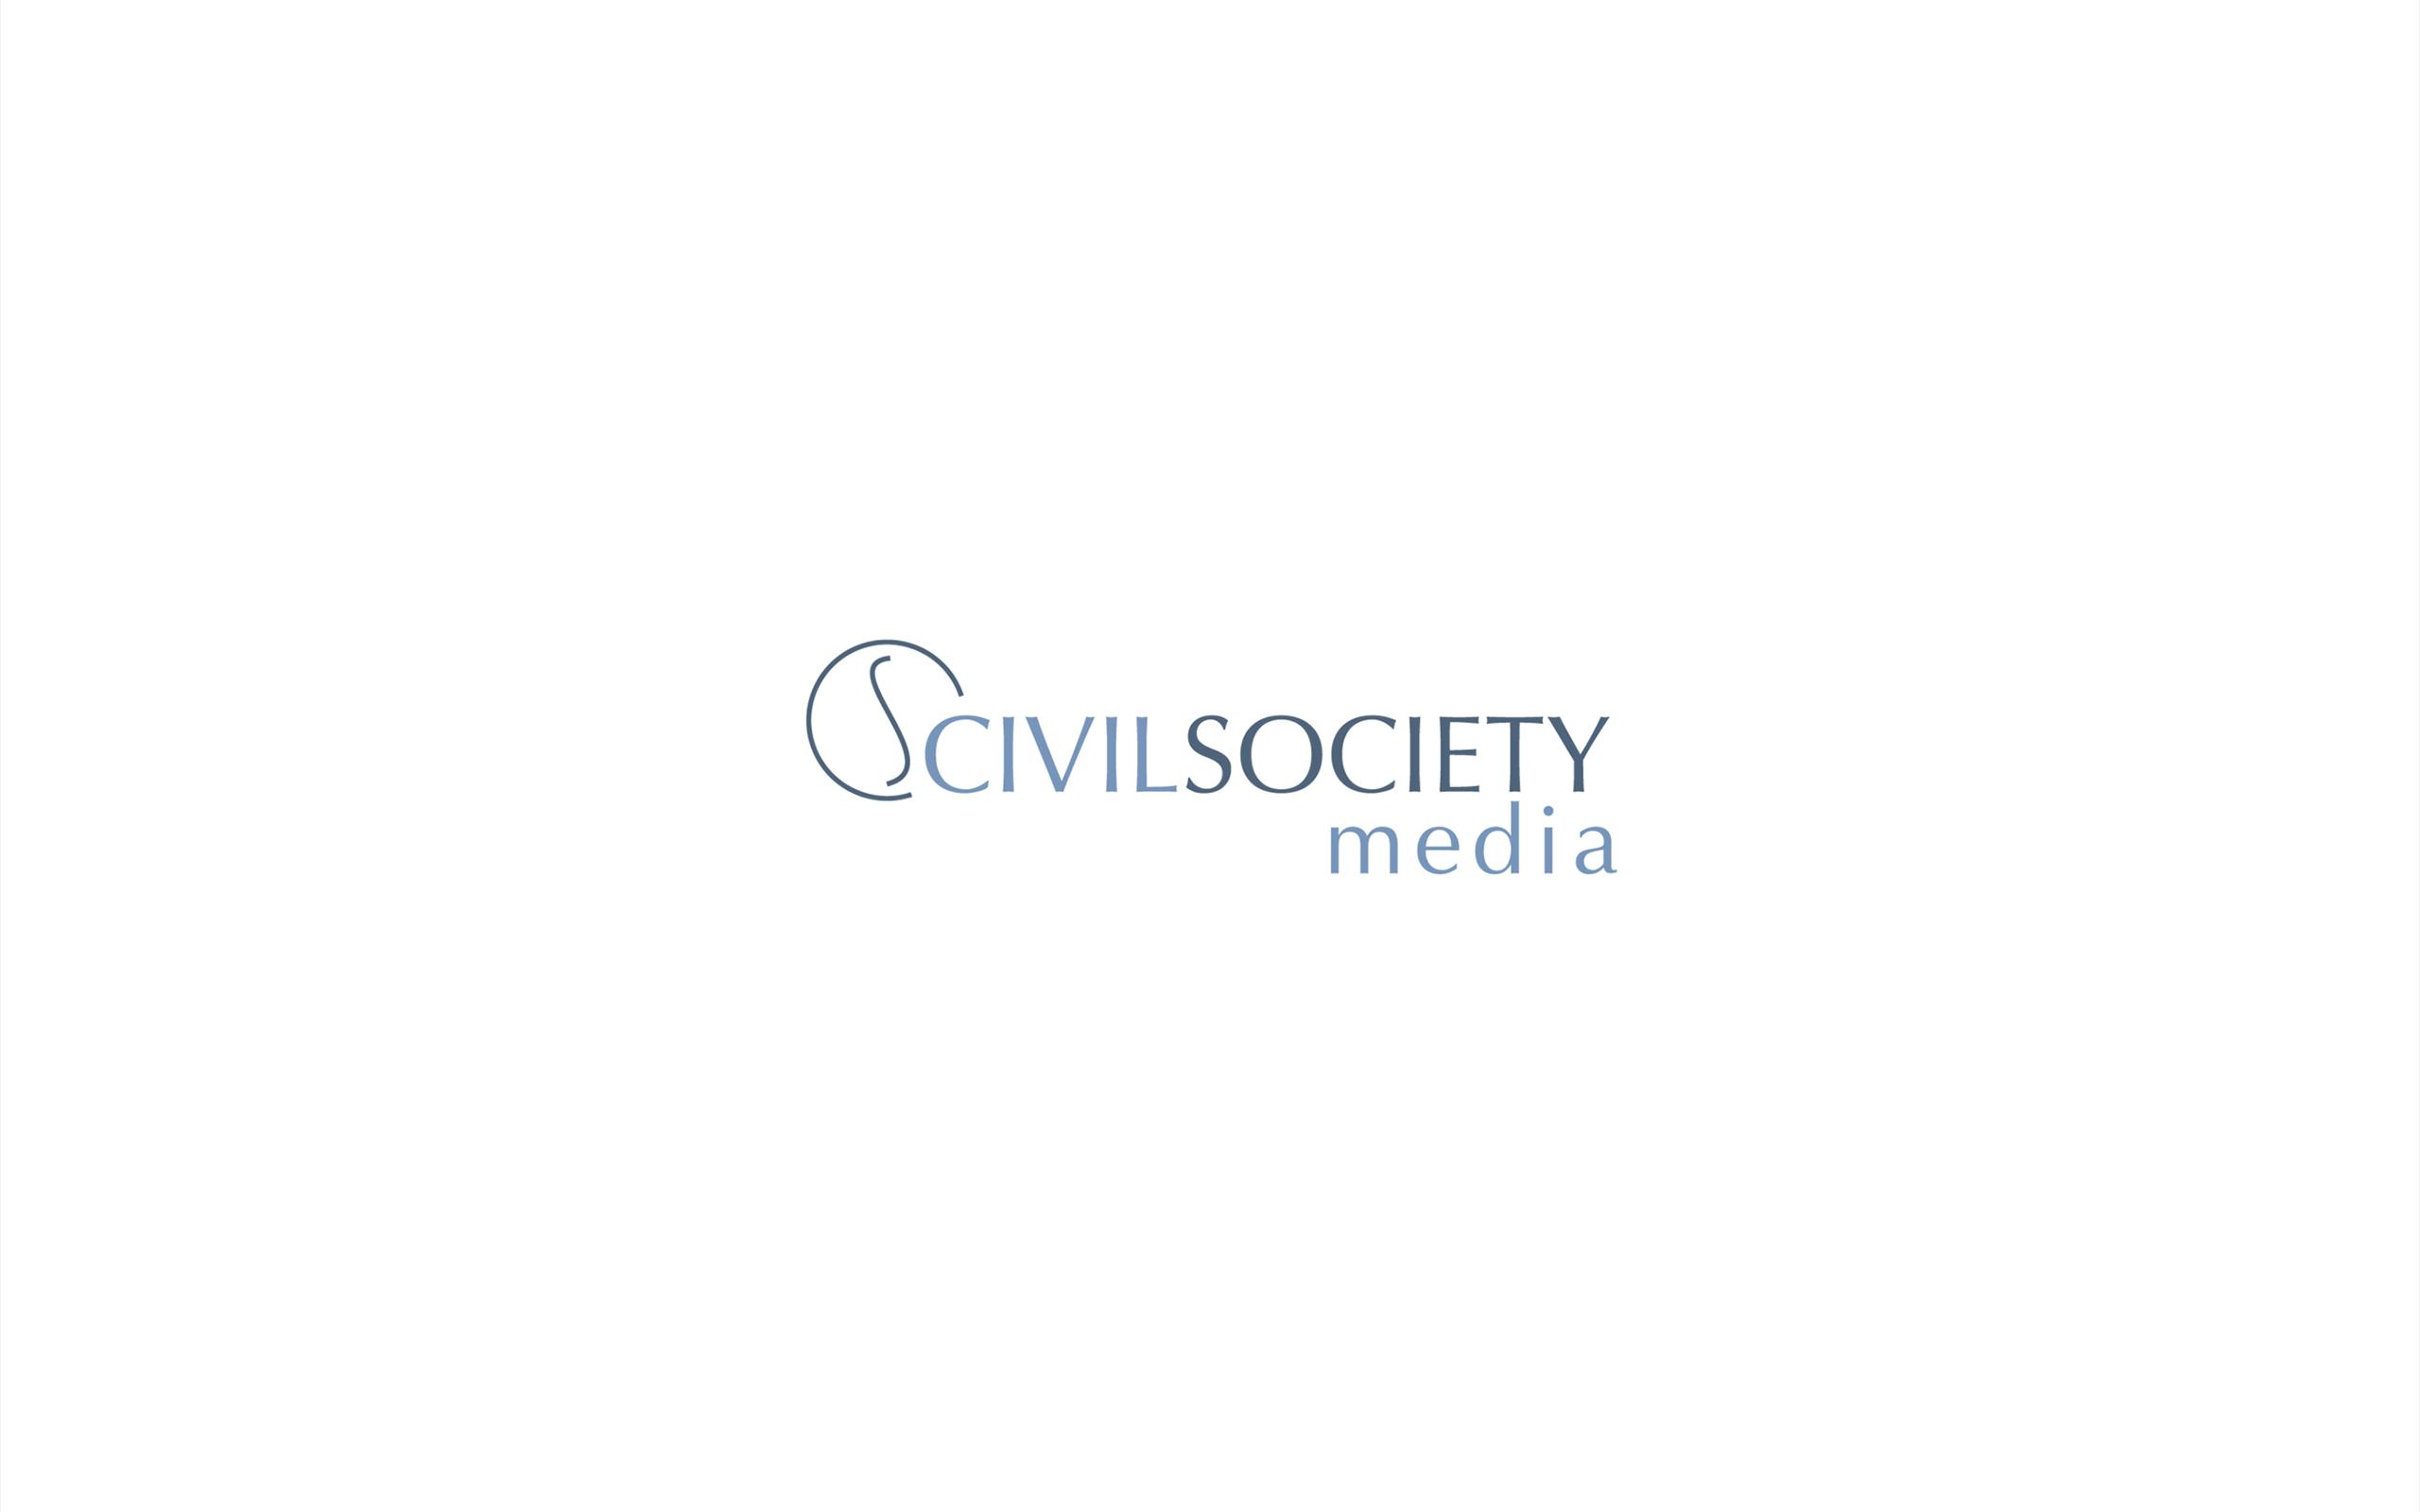 Civil Society Media Events screenshot 4